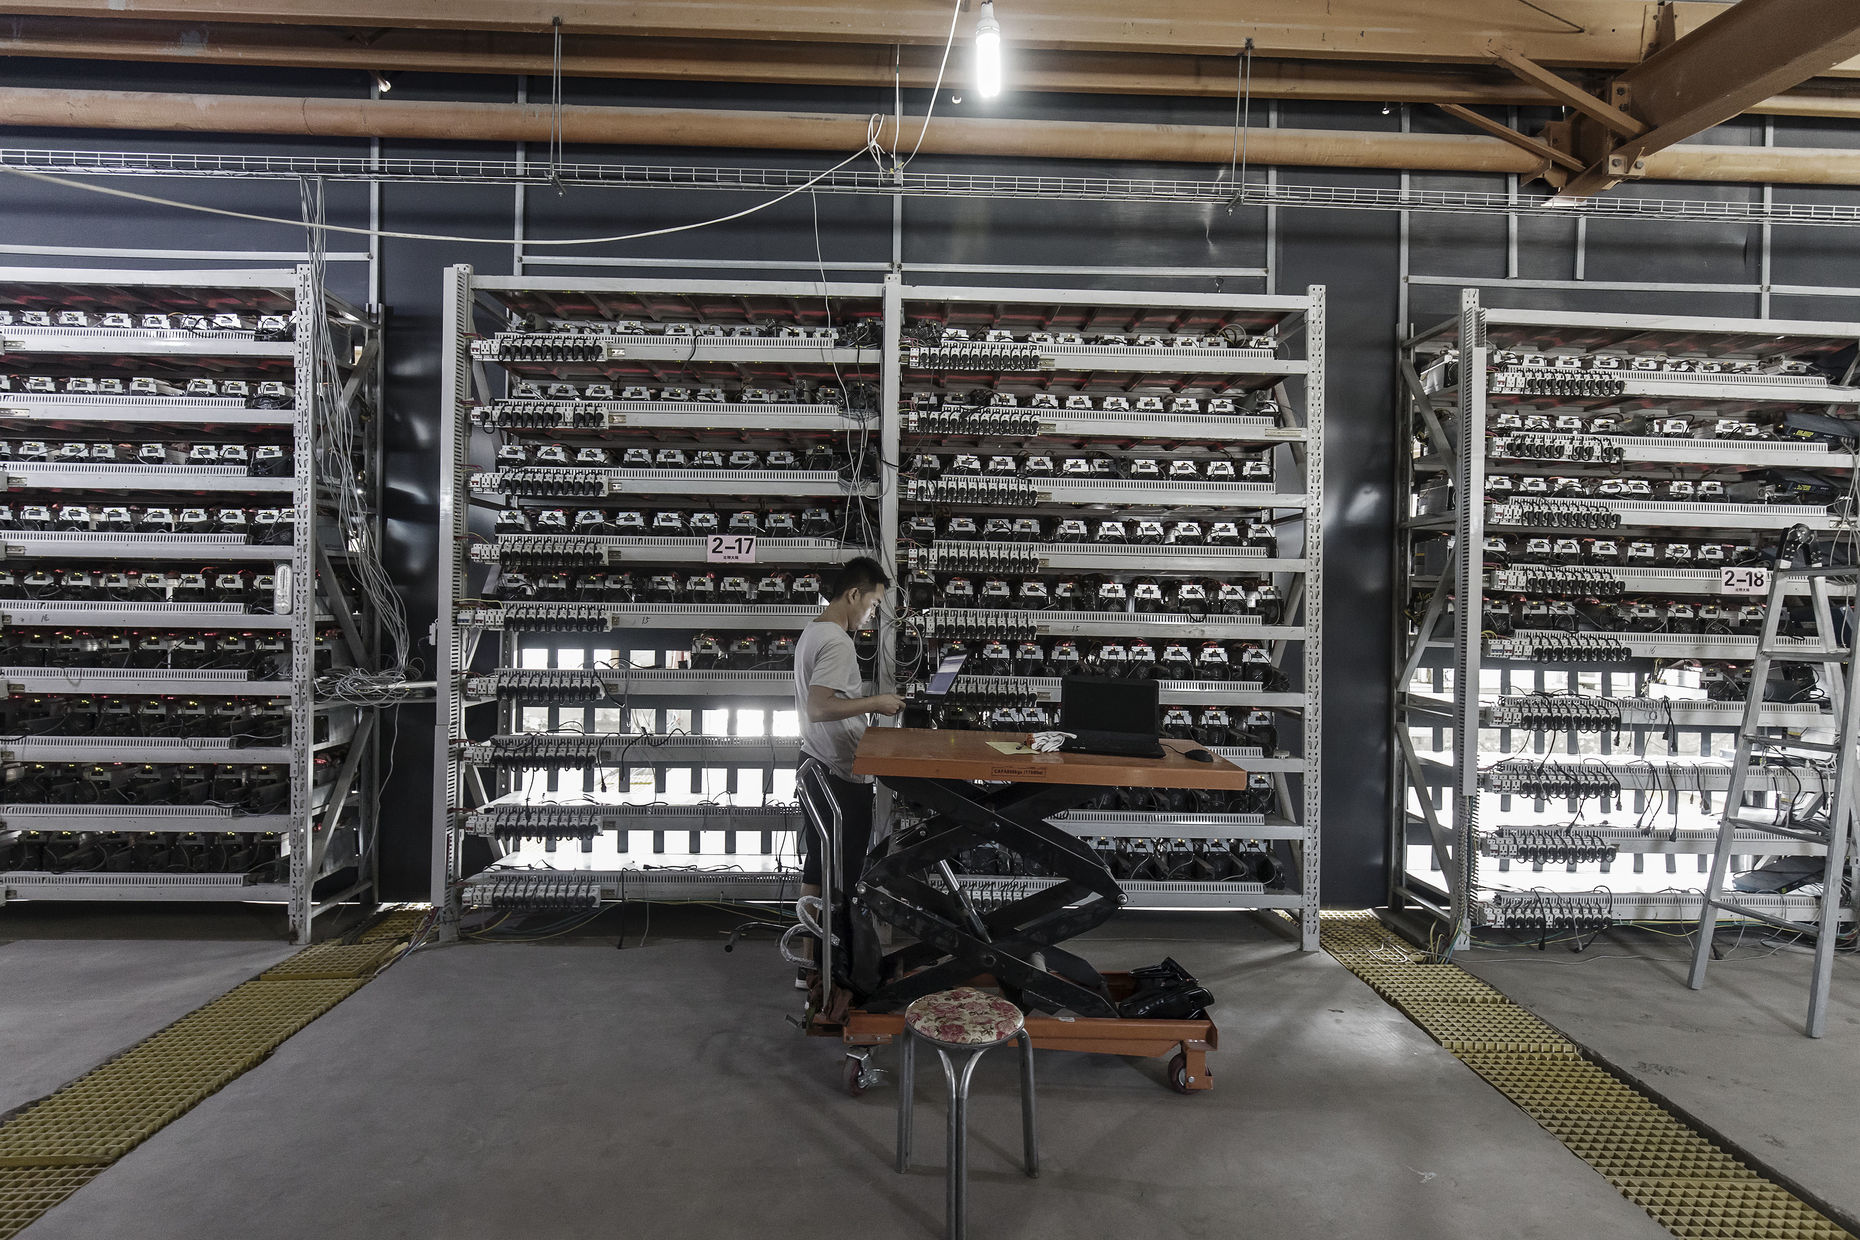 A worker inspects bitcoin mining machines at a facility in Ordos, Inner Mongolia, China. Photo: Bloomberg